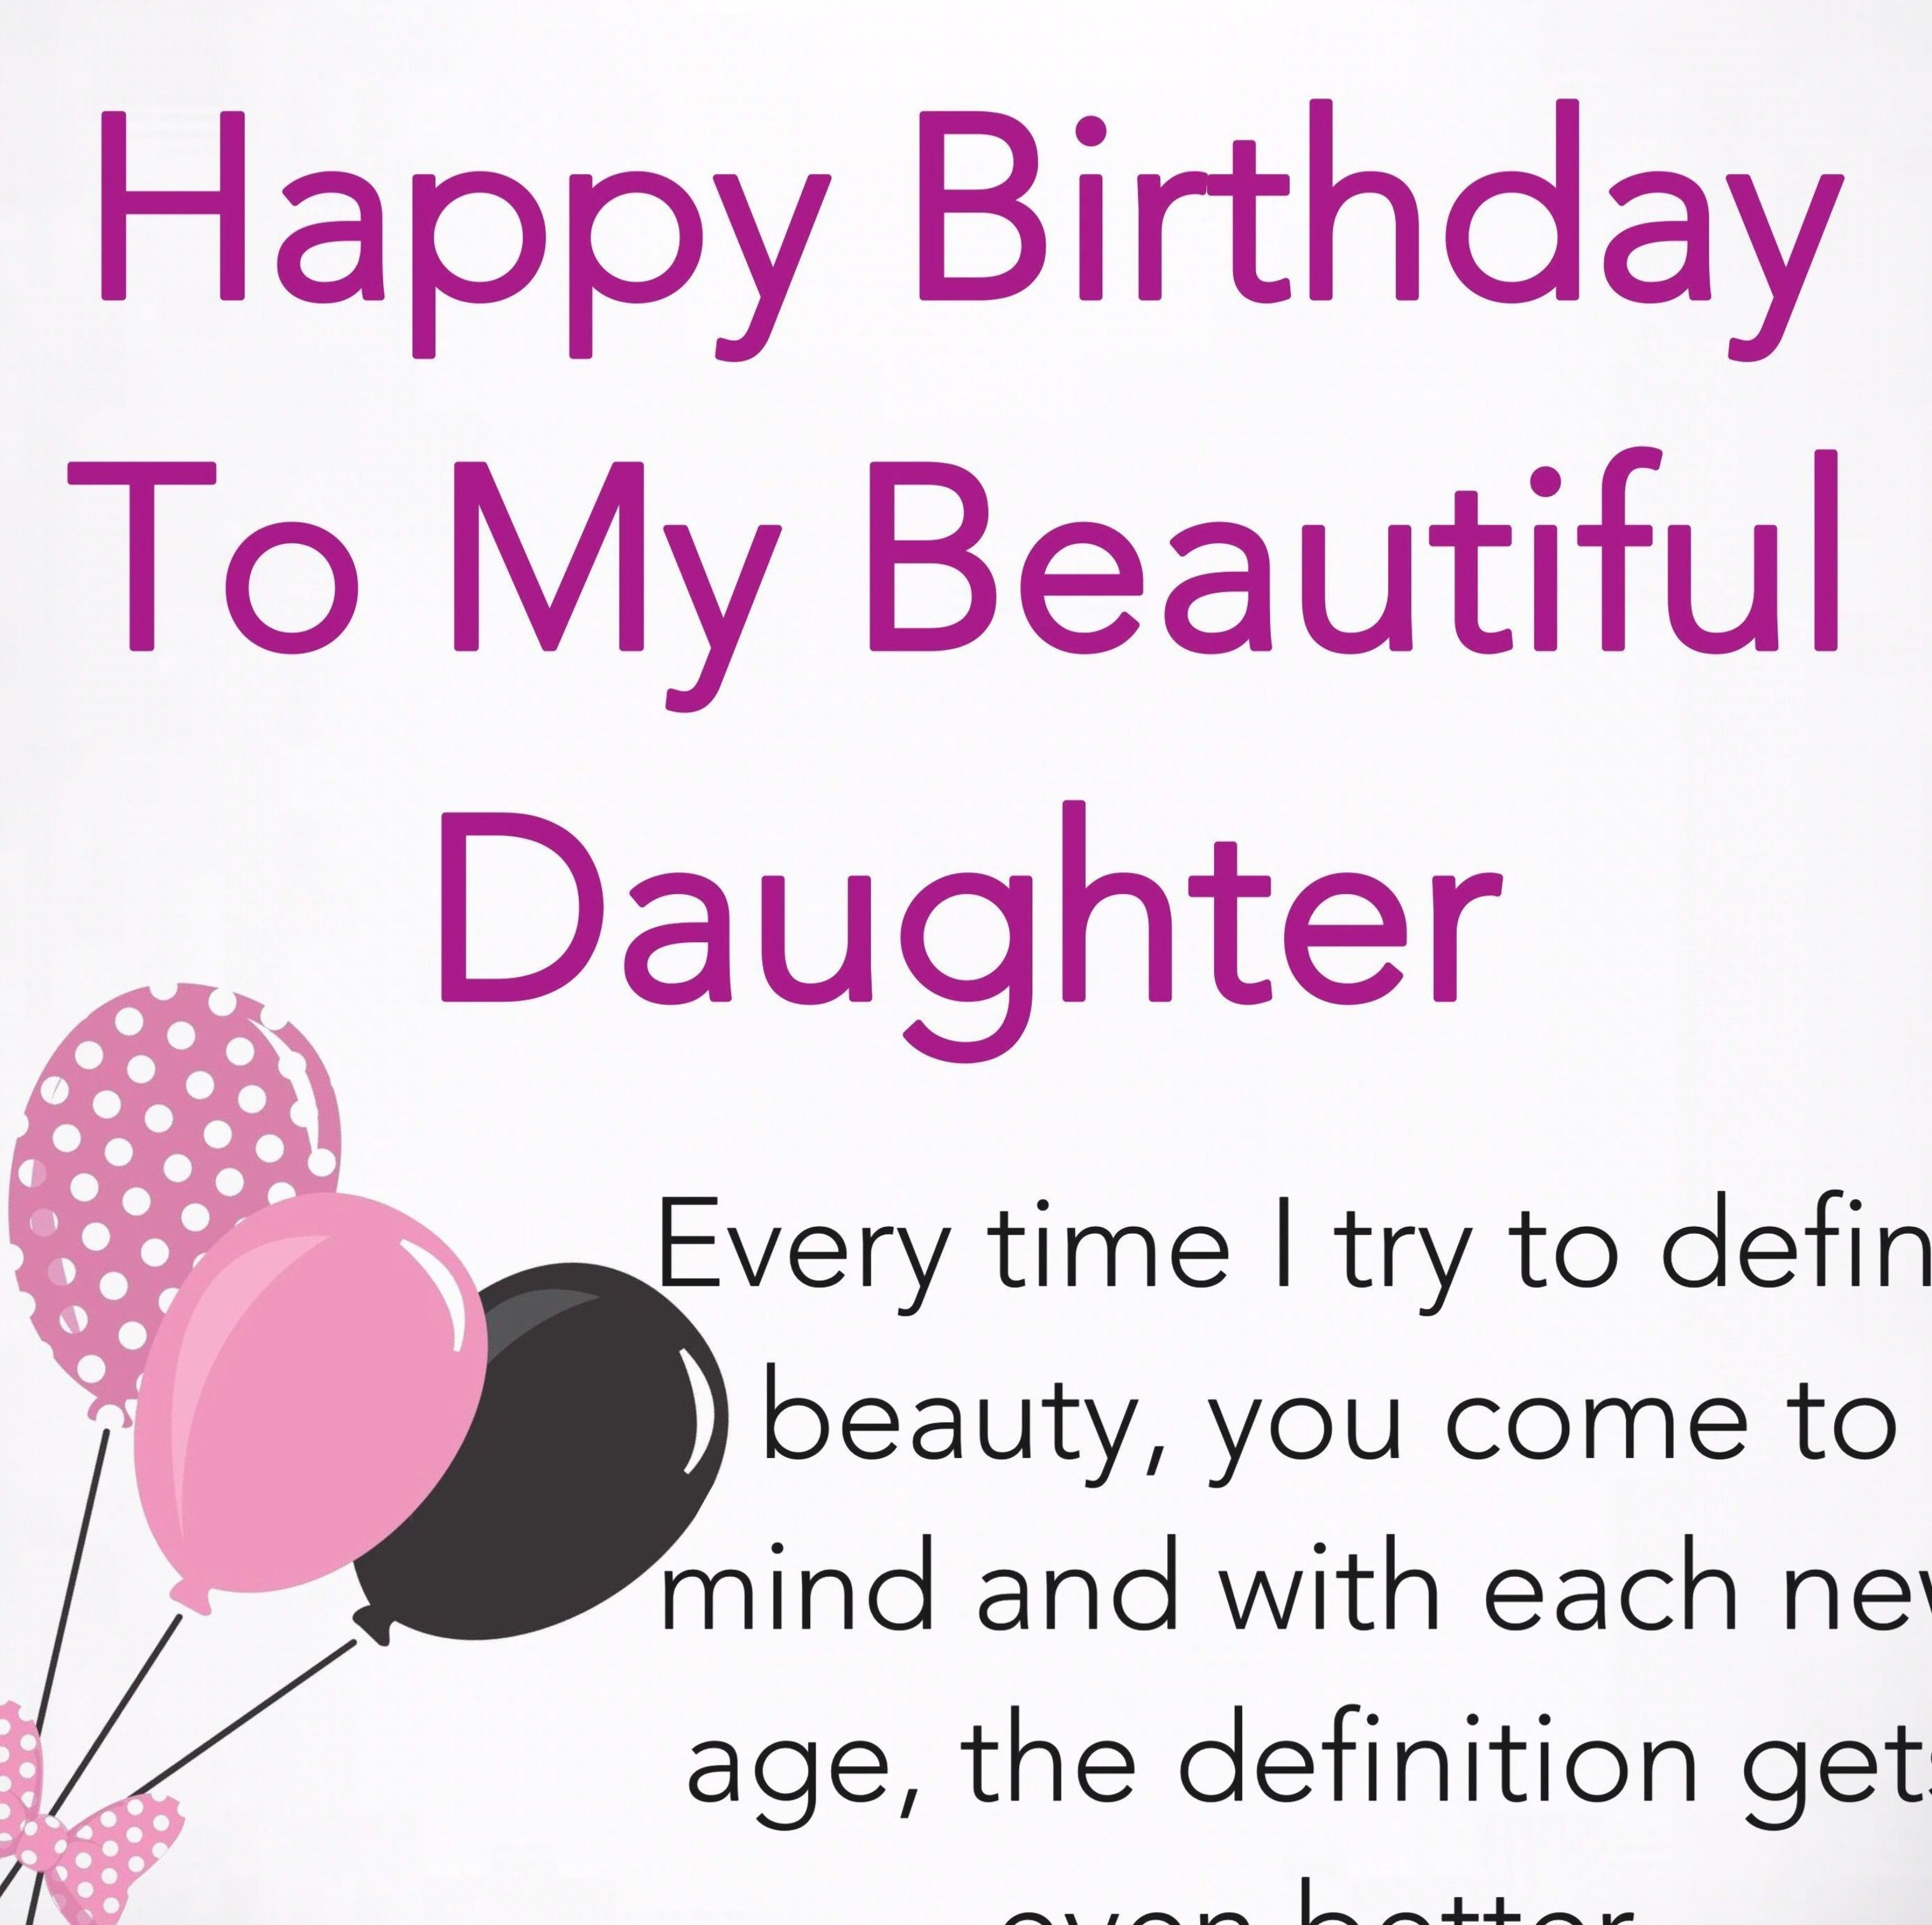 Happy Birthday Daughter Birthday Quotes For Daughter Happy Birthday Quotes For Daughter Birthday Quotes Funny